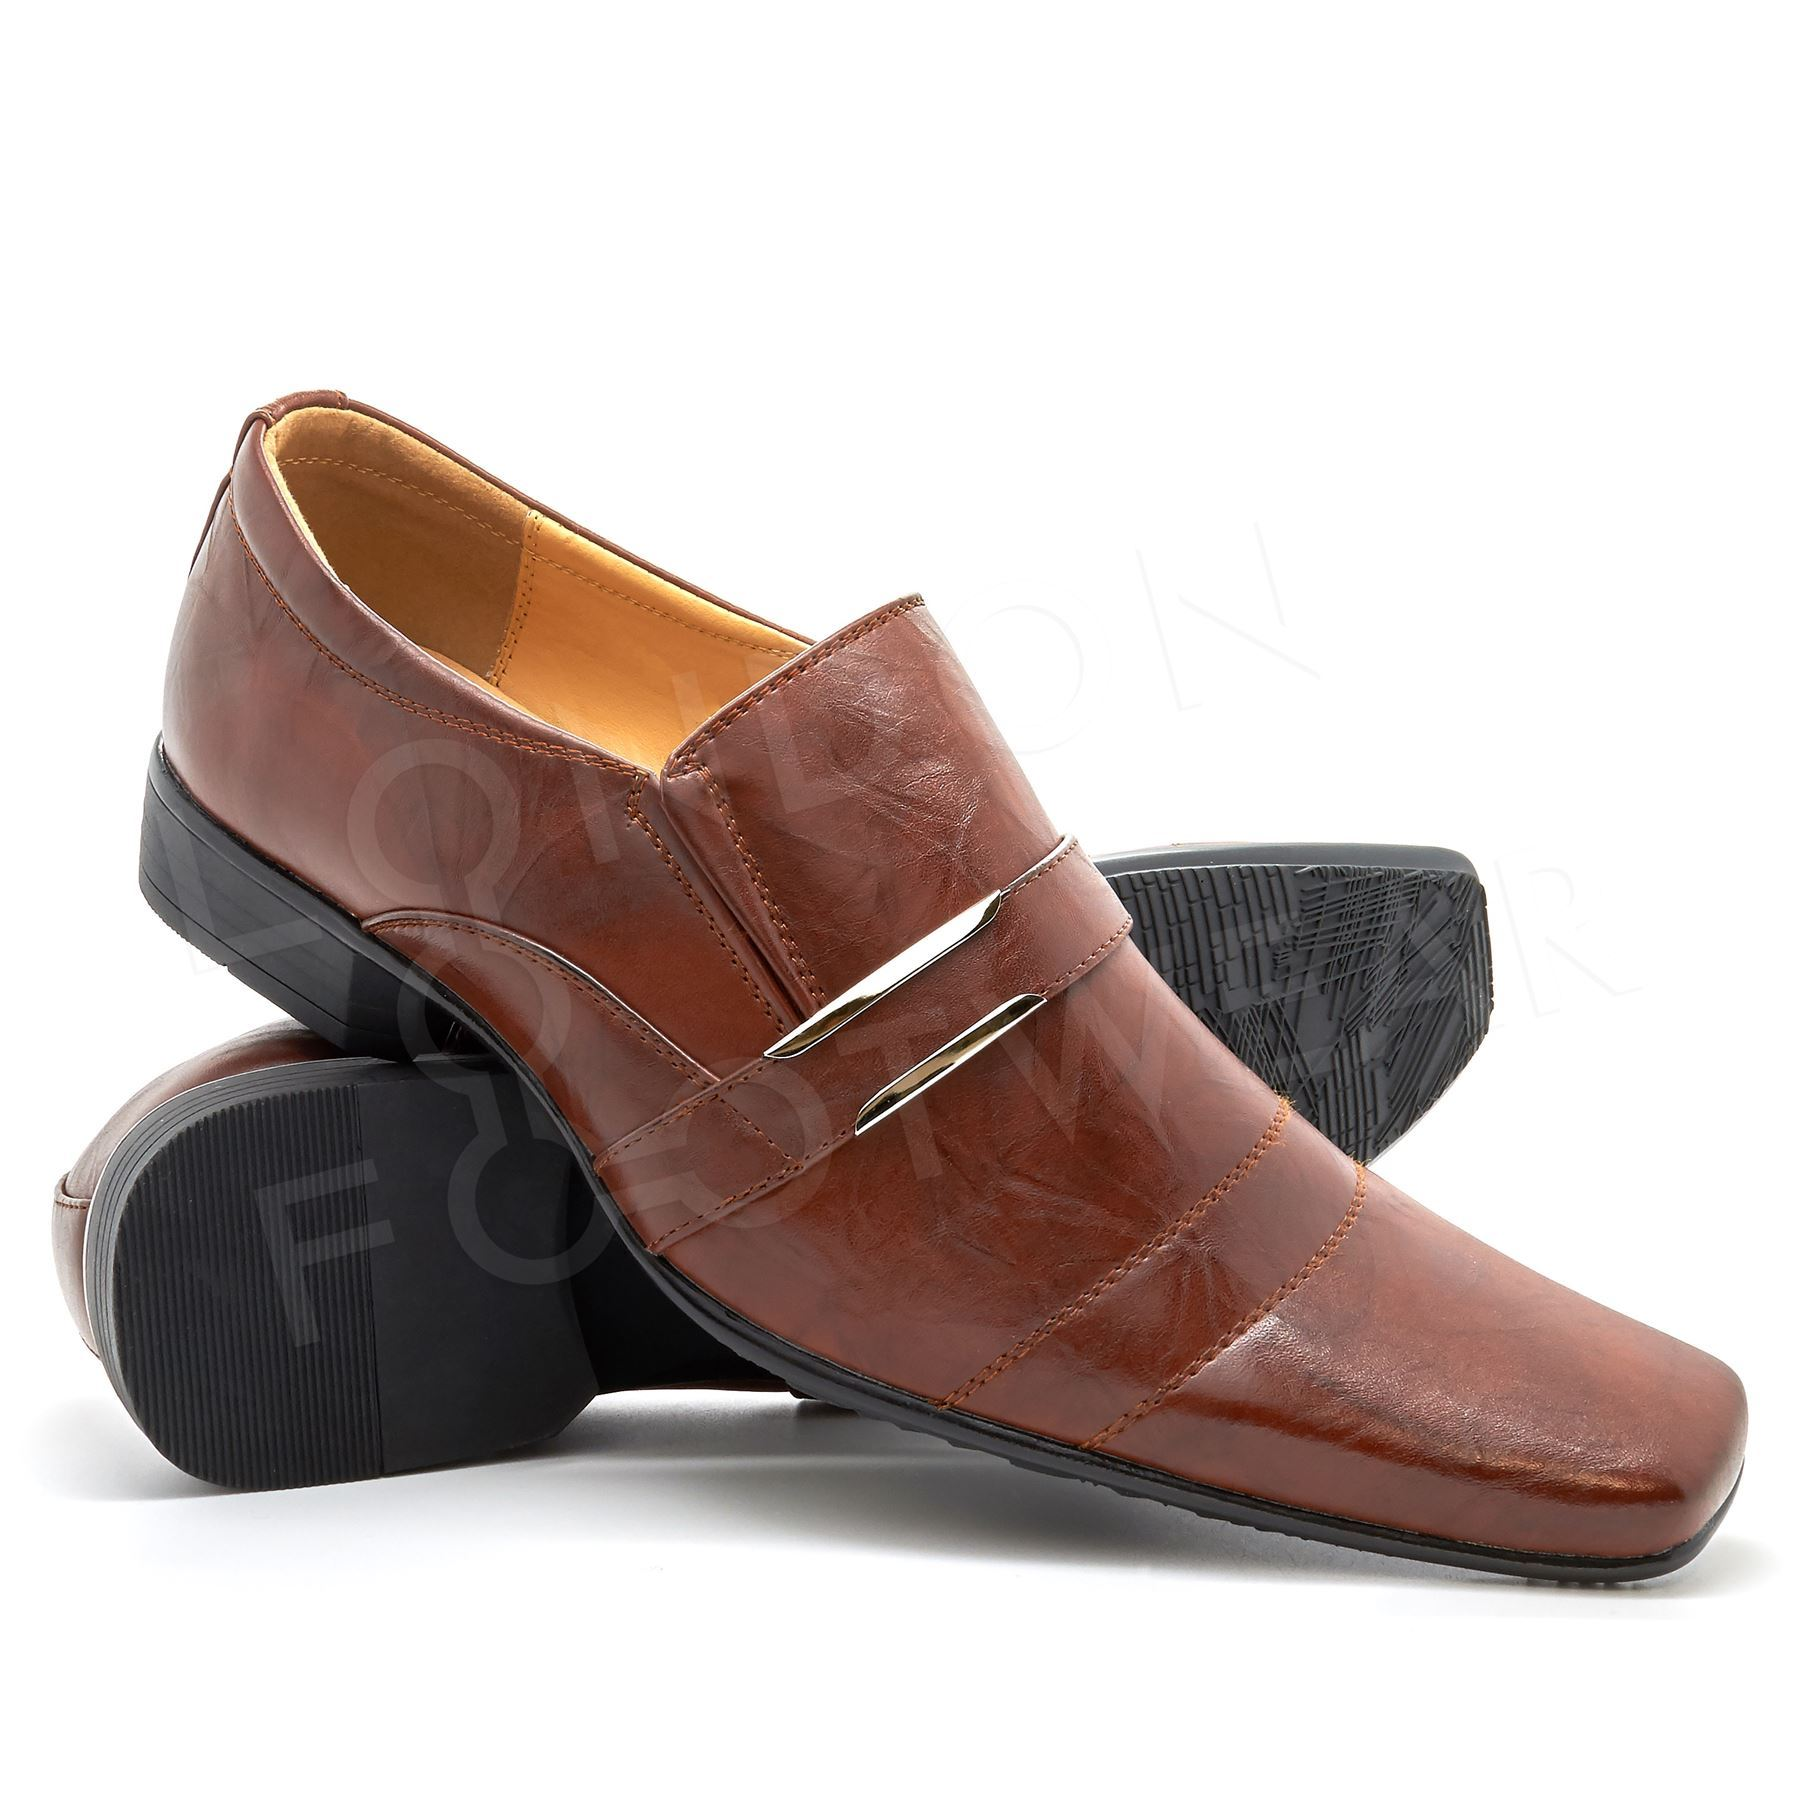 Find the best selection of cheap mens wedding shoes in bulk here at xianggangdishini.gq Including blue wedding shoes rhinestones and peep toe ivory wedding shoes at wholesale prices from mens wedding shoes manufacturers. Source discount and high quality products in hundreds of categories wholesale direct from China.